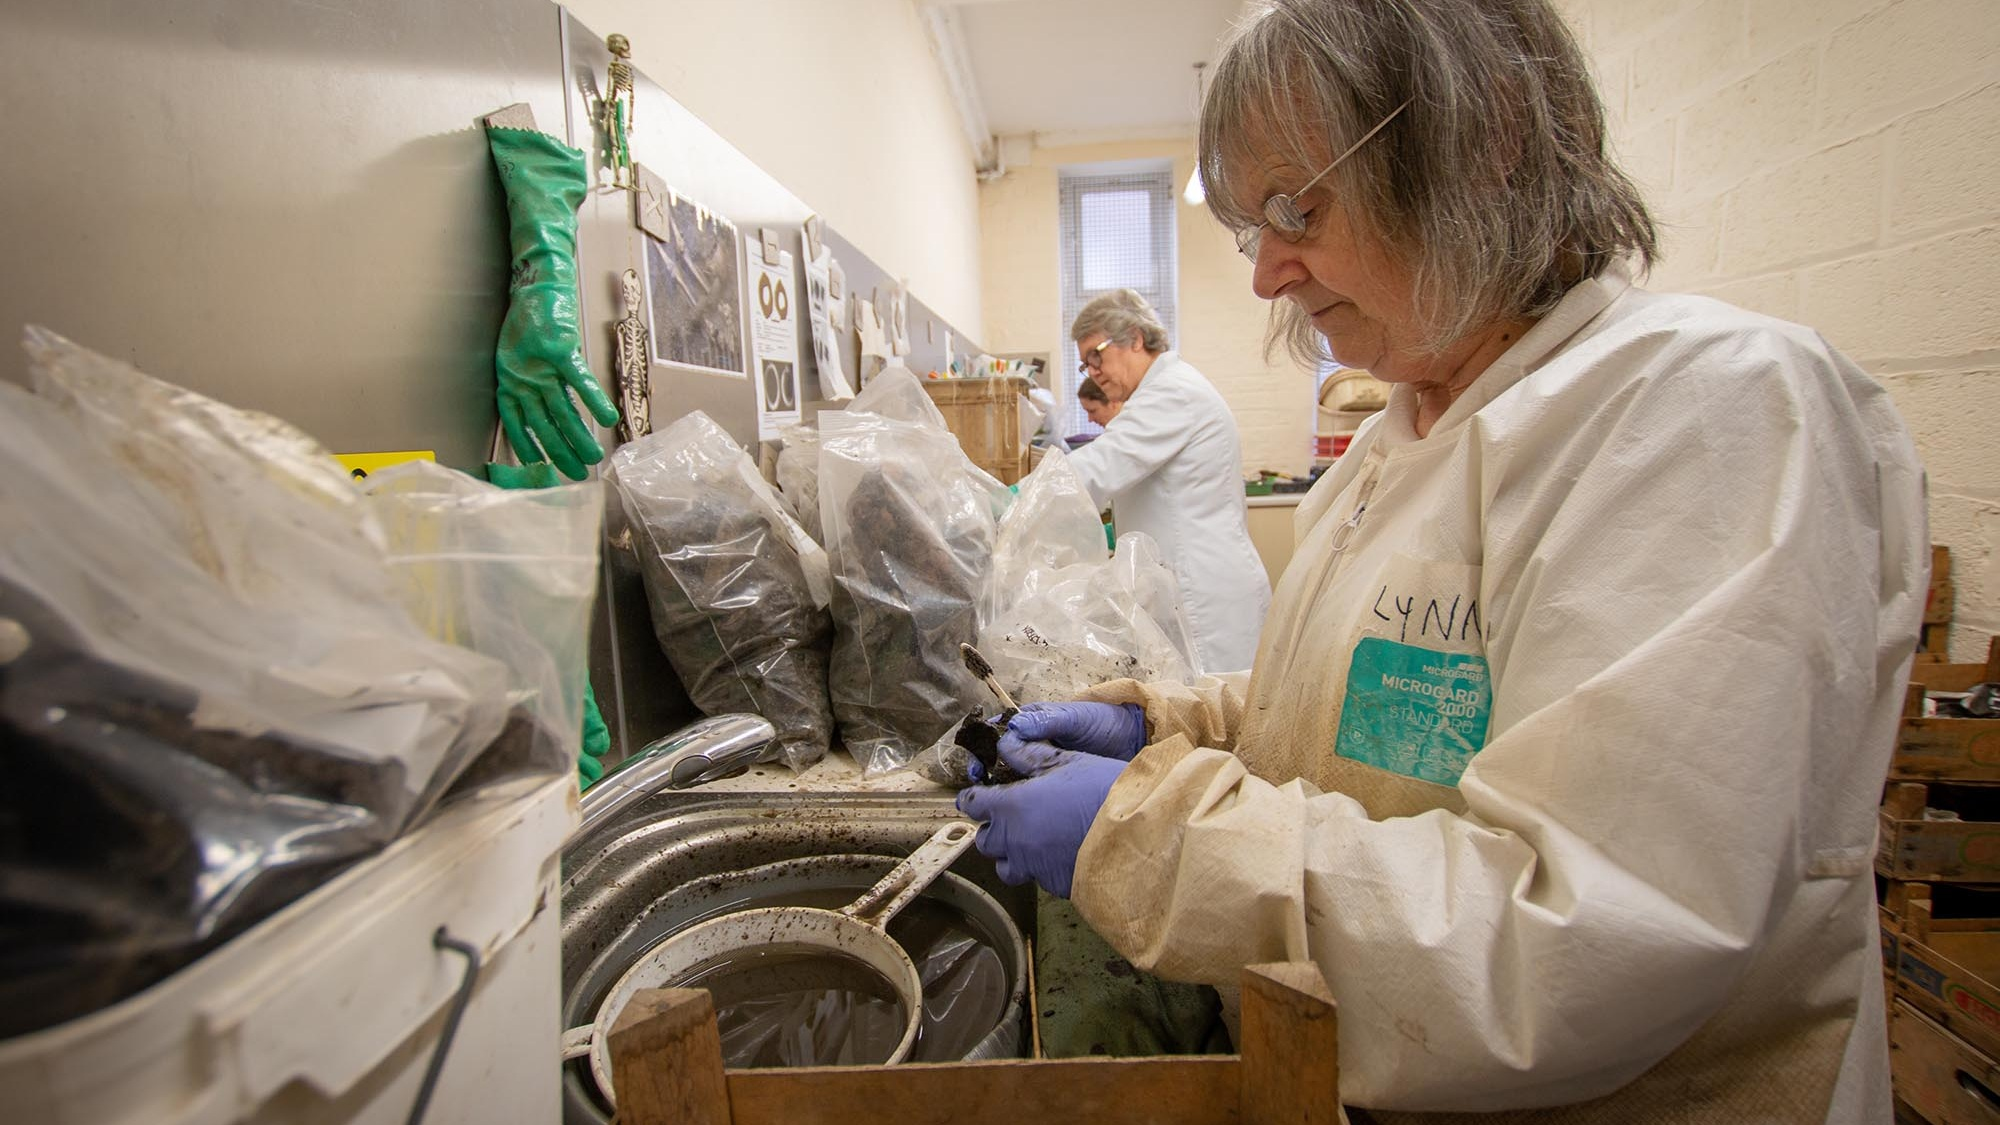 Volunteer - Explore the exciting opportunities to volunteer with York Archaeological Trust.More information →